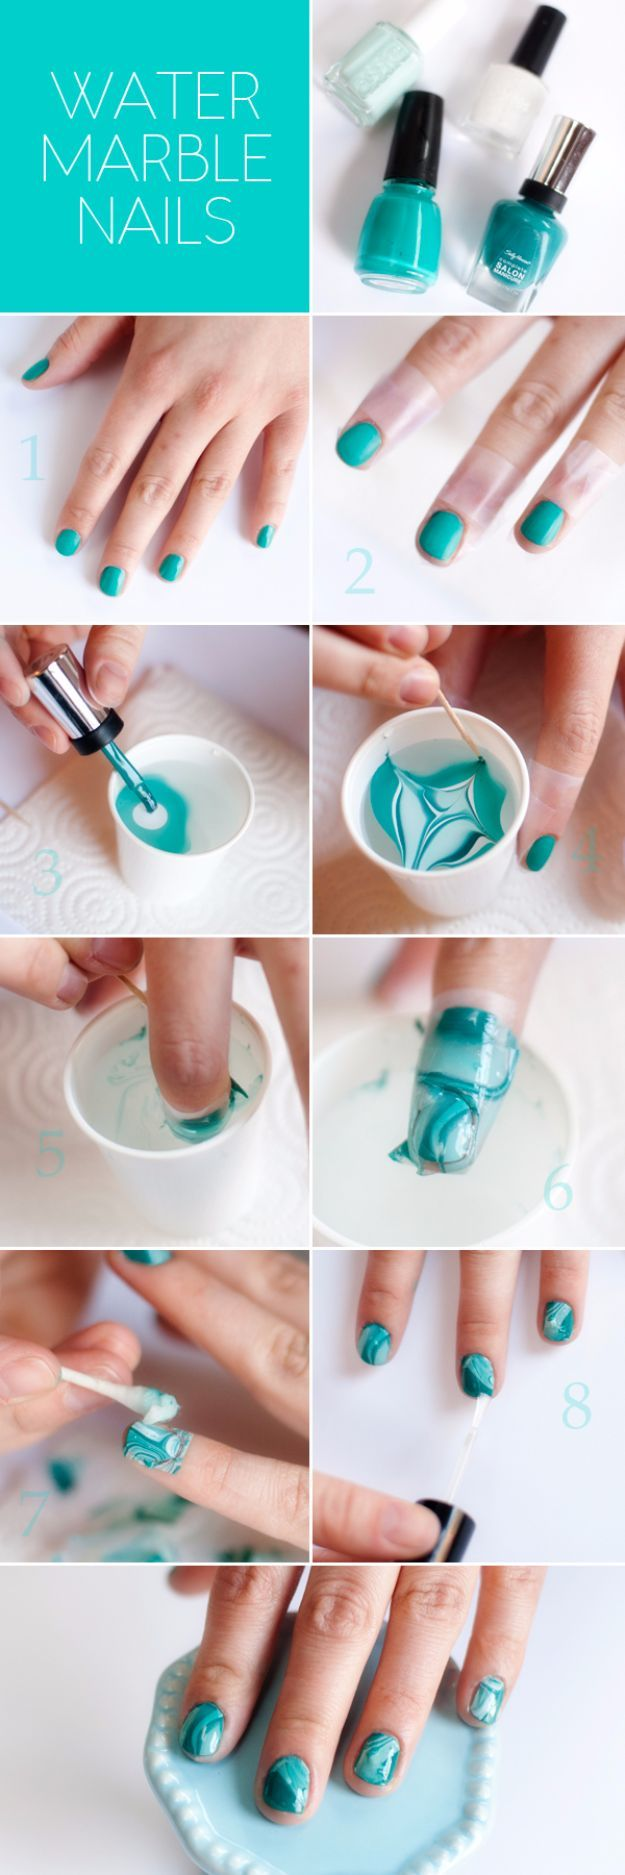 Easy Ways to Paint Nails - Water Marble Nails - Quick Tips and Tricks for Manicures at Home - Nail Designs and Art Ideas for Simple DIY Pedicures and Manicure at Home - Hacks and Tutorials with Cool Step by Step Instructions and Tutorials - DIY Projects and Crafts by DIY JOY http://diyjoy.com/easy-ways-to-paint-nails